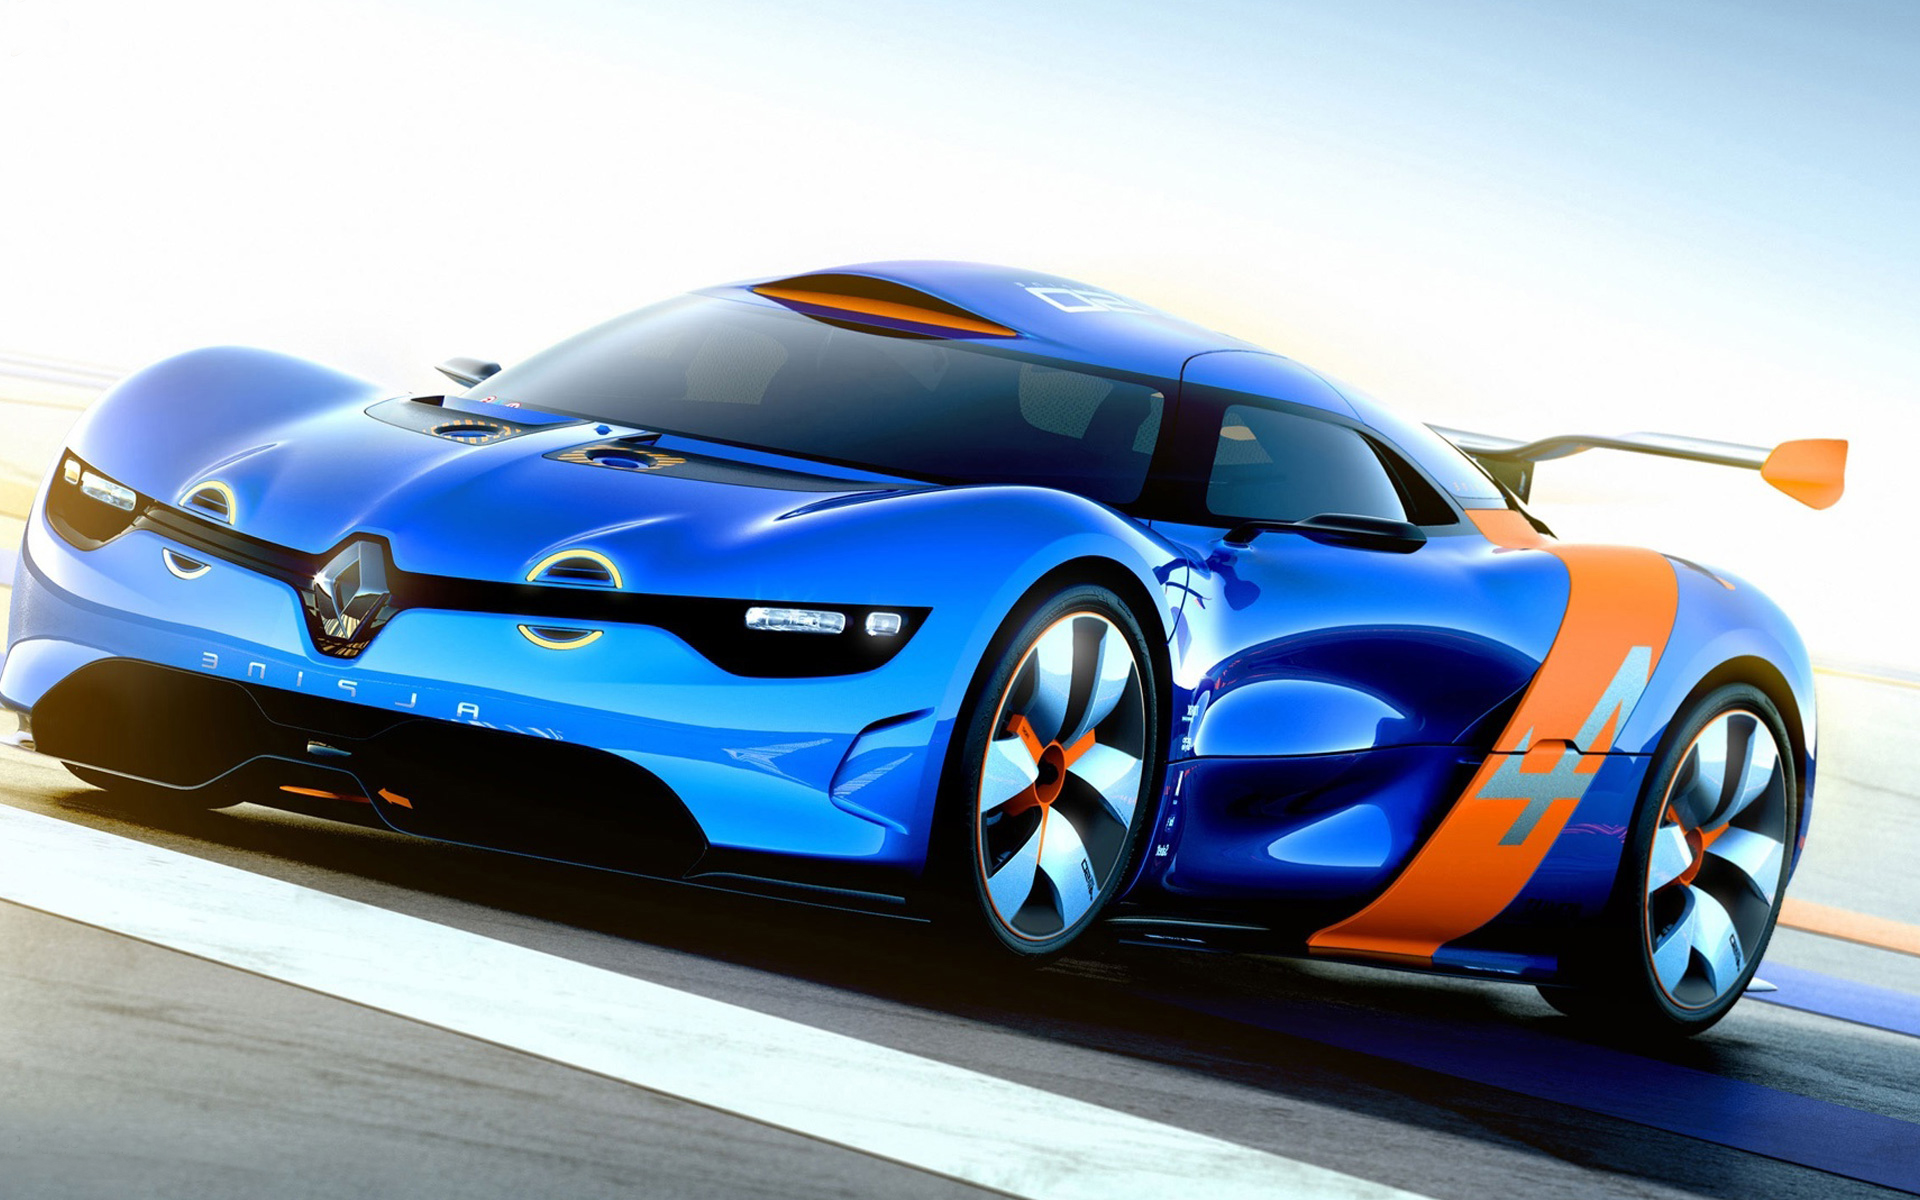 Renault Alpine Blue Sports Car 12133 Wallpaper Wallpaper hd 1920x1200